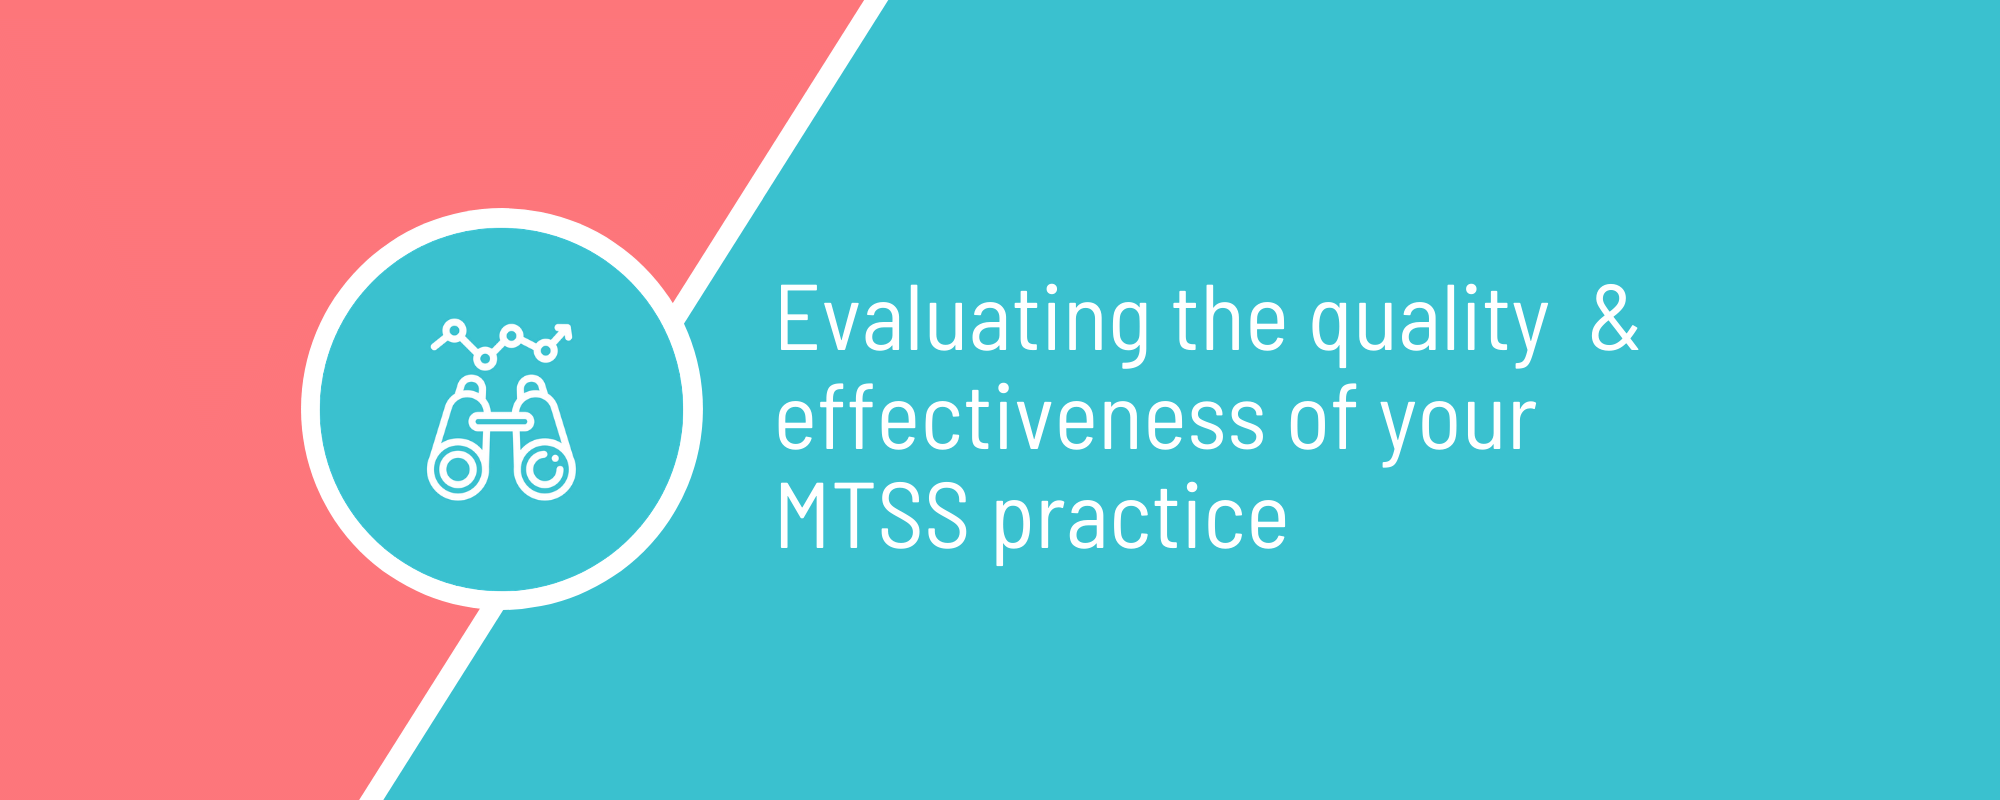 Webinar - Evaluating the Quality and Effectiveness of your MTSS Practice